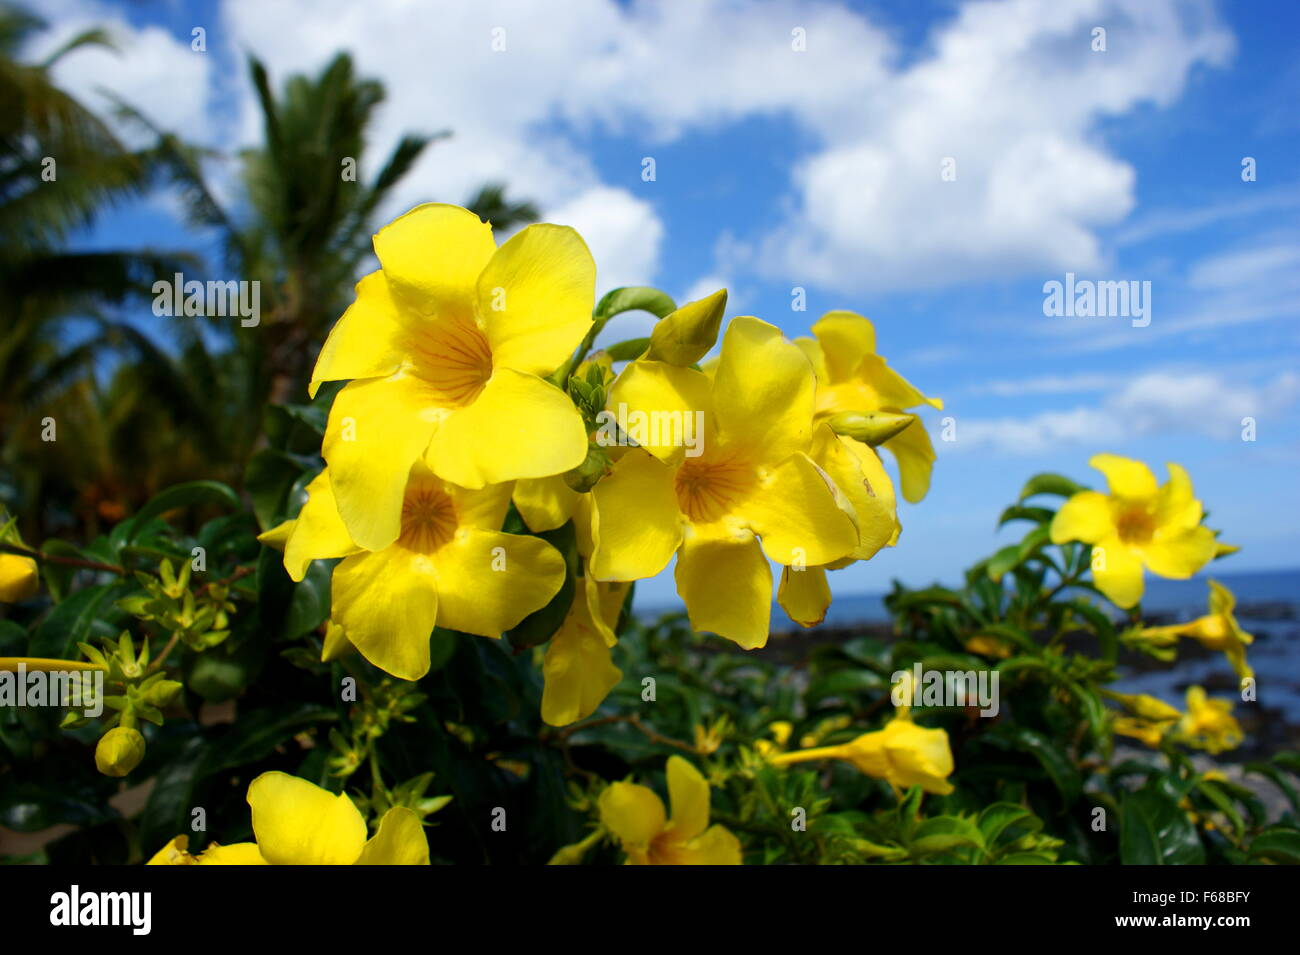 Africa mauritius beautiful yellow flowers stock photos africa beautiful yellow flowers allamanda stock image izmirmasajfo